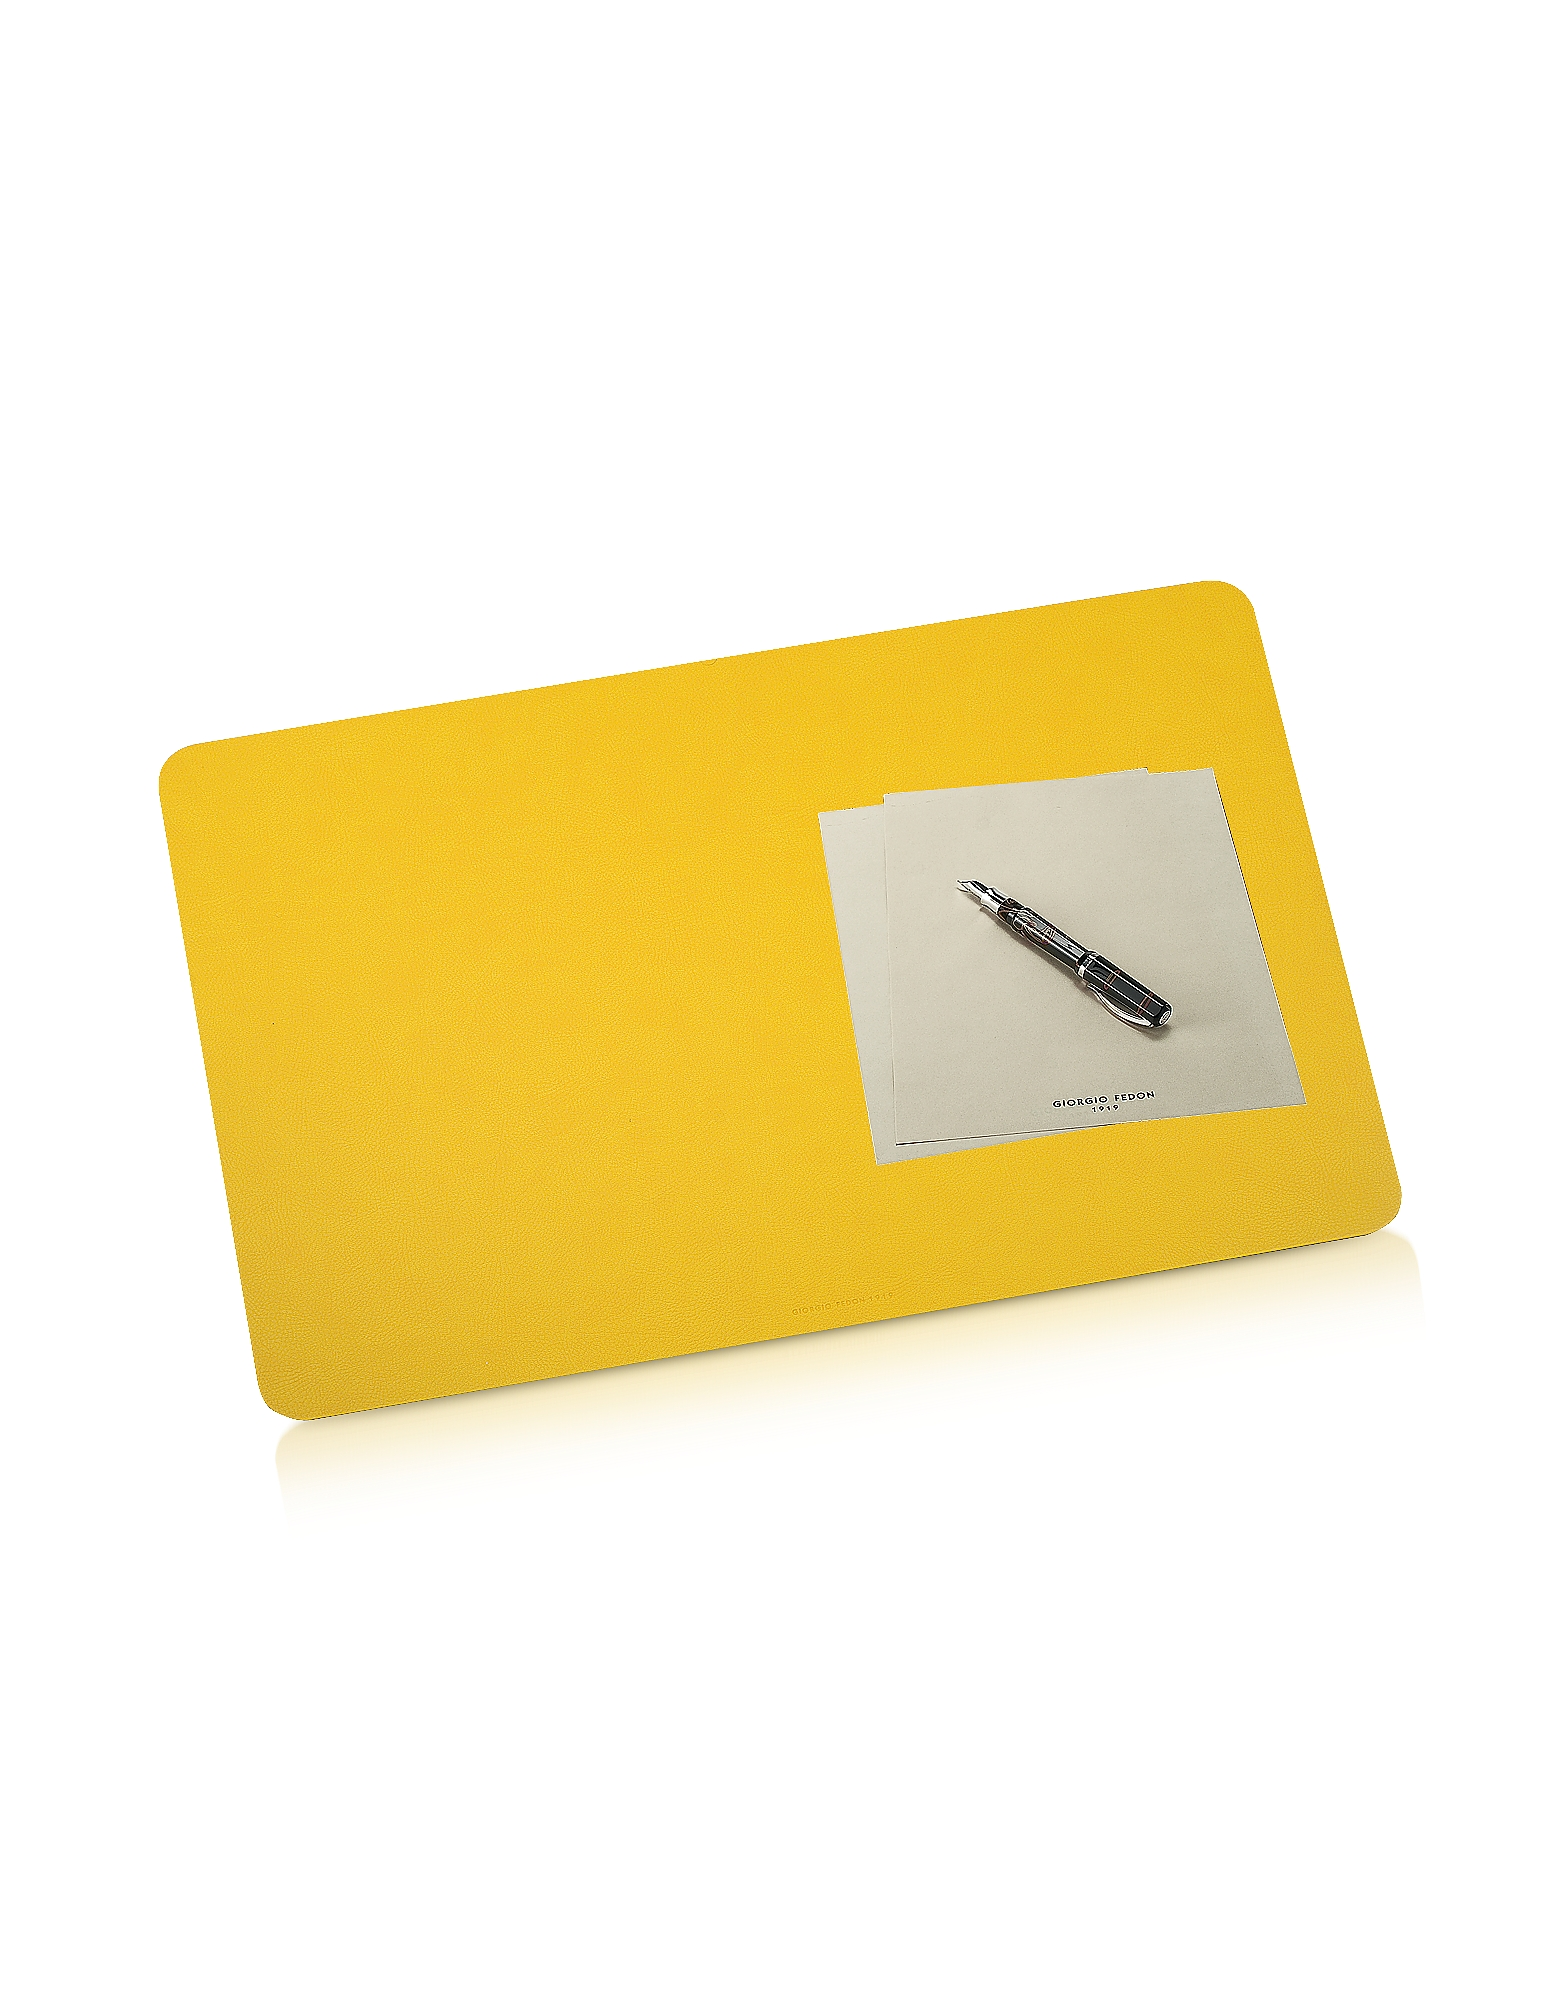 Giorgio Fedon 1919 Desk Accessories, Charme - Yellow Desk Pad